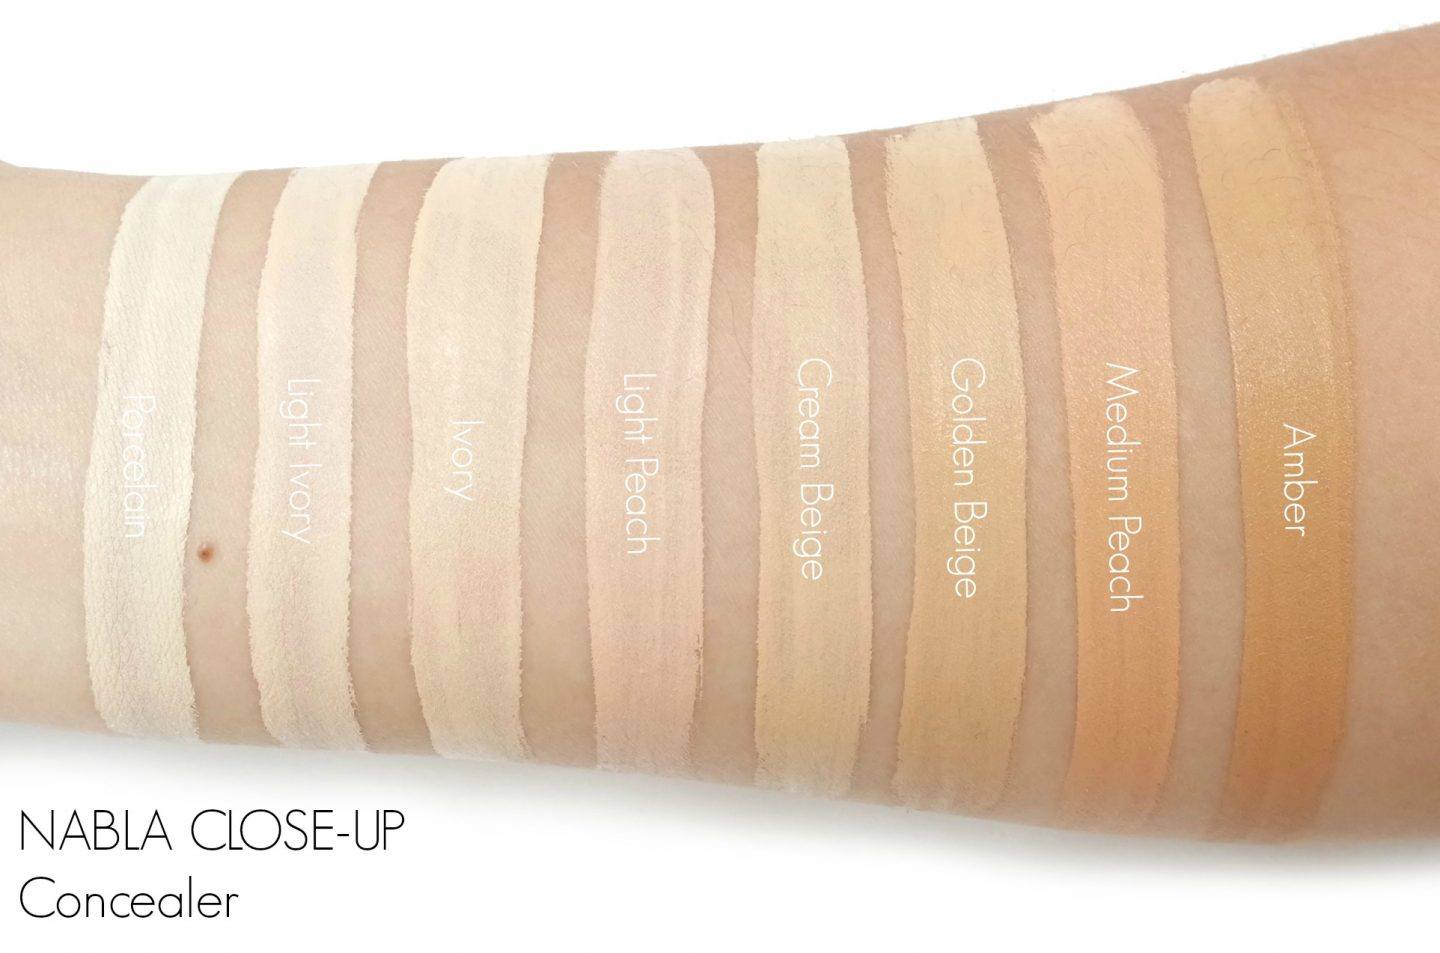 NABLA CLOSE-UP Concealer Swatches